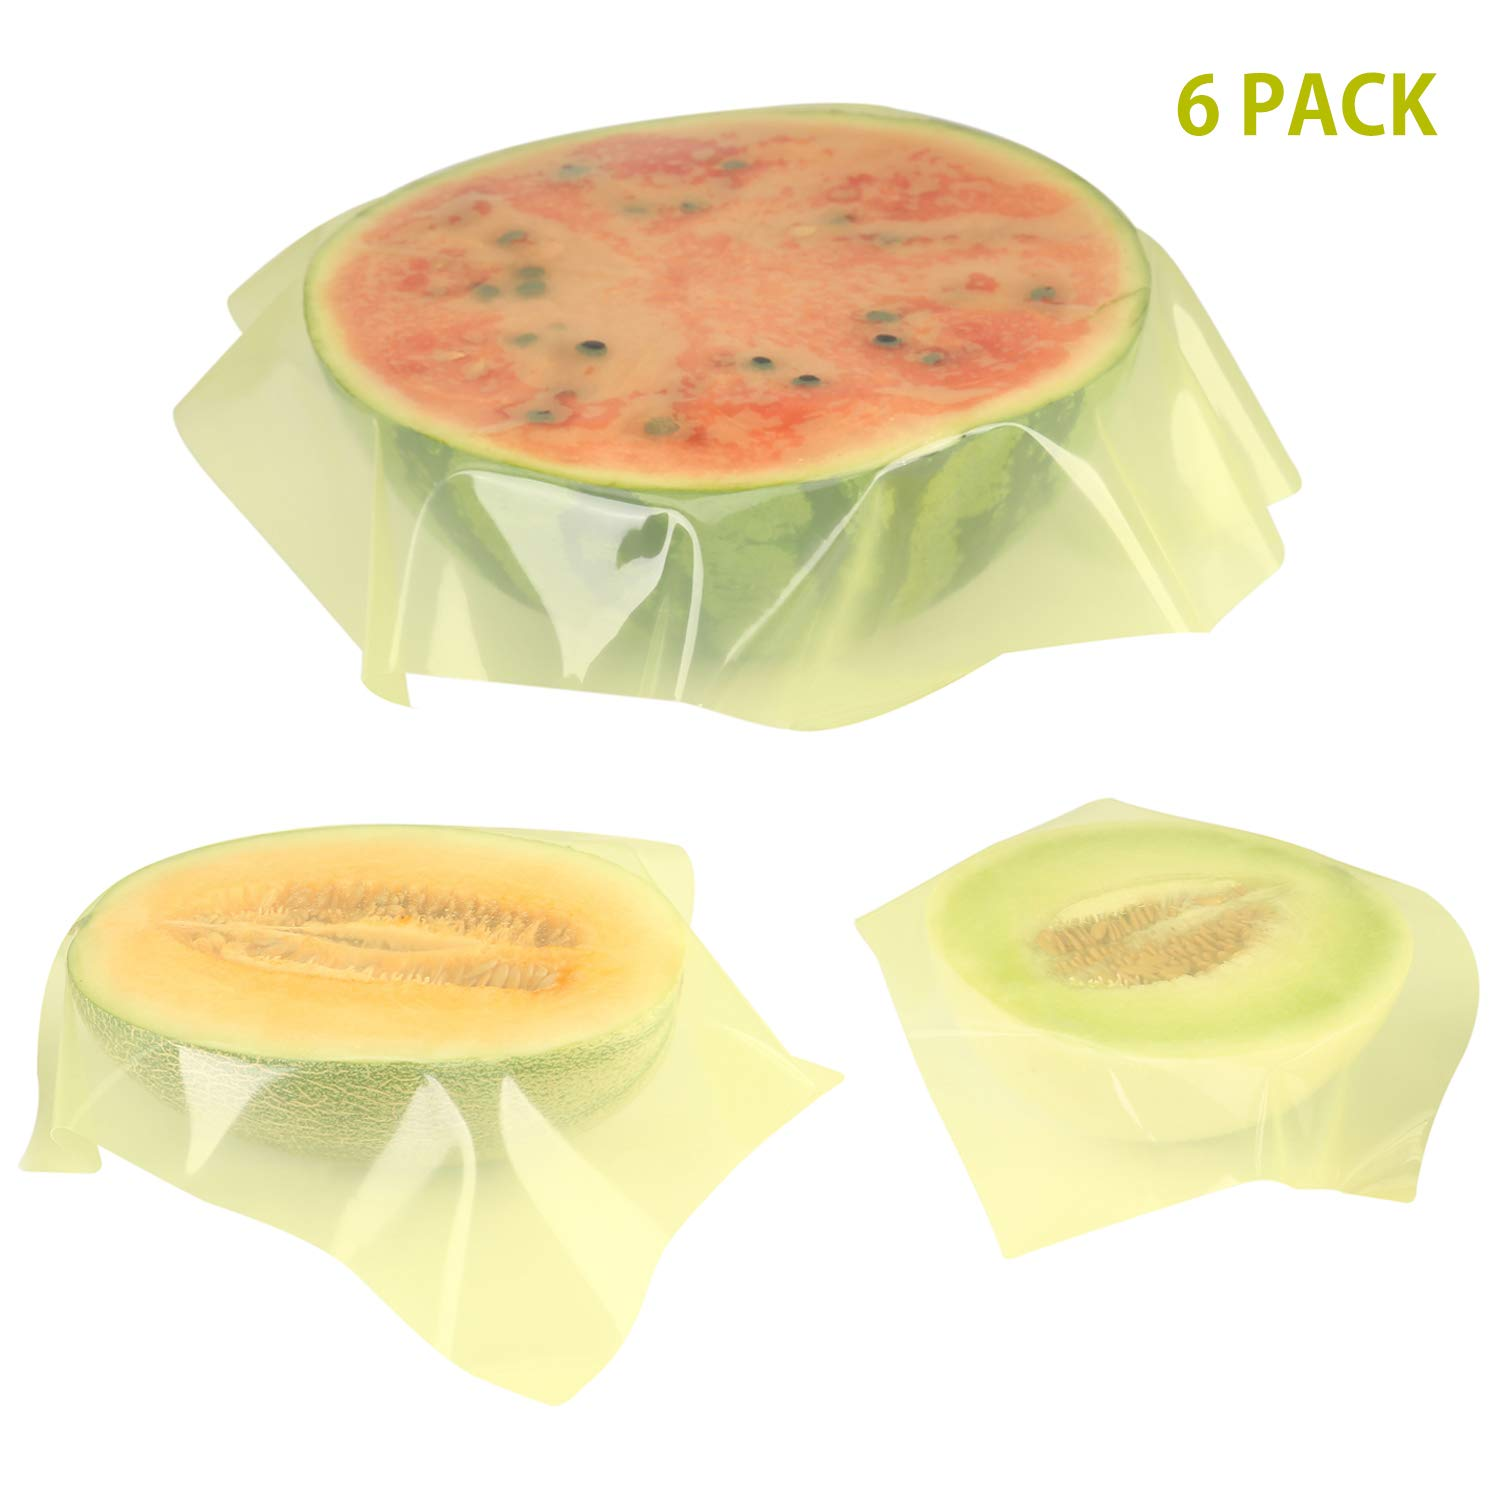 TOURIT Silicone Food Wraps 6 Pcs Eco-Friendly Reusable Food Wraps Sustainable Plastic Free Food Storage for Vegetable Fruit Snack Lunch 3 Sizes (S, M, L)